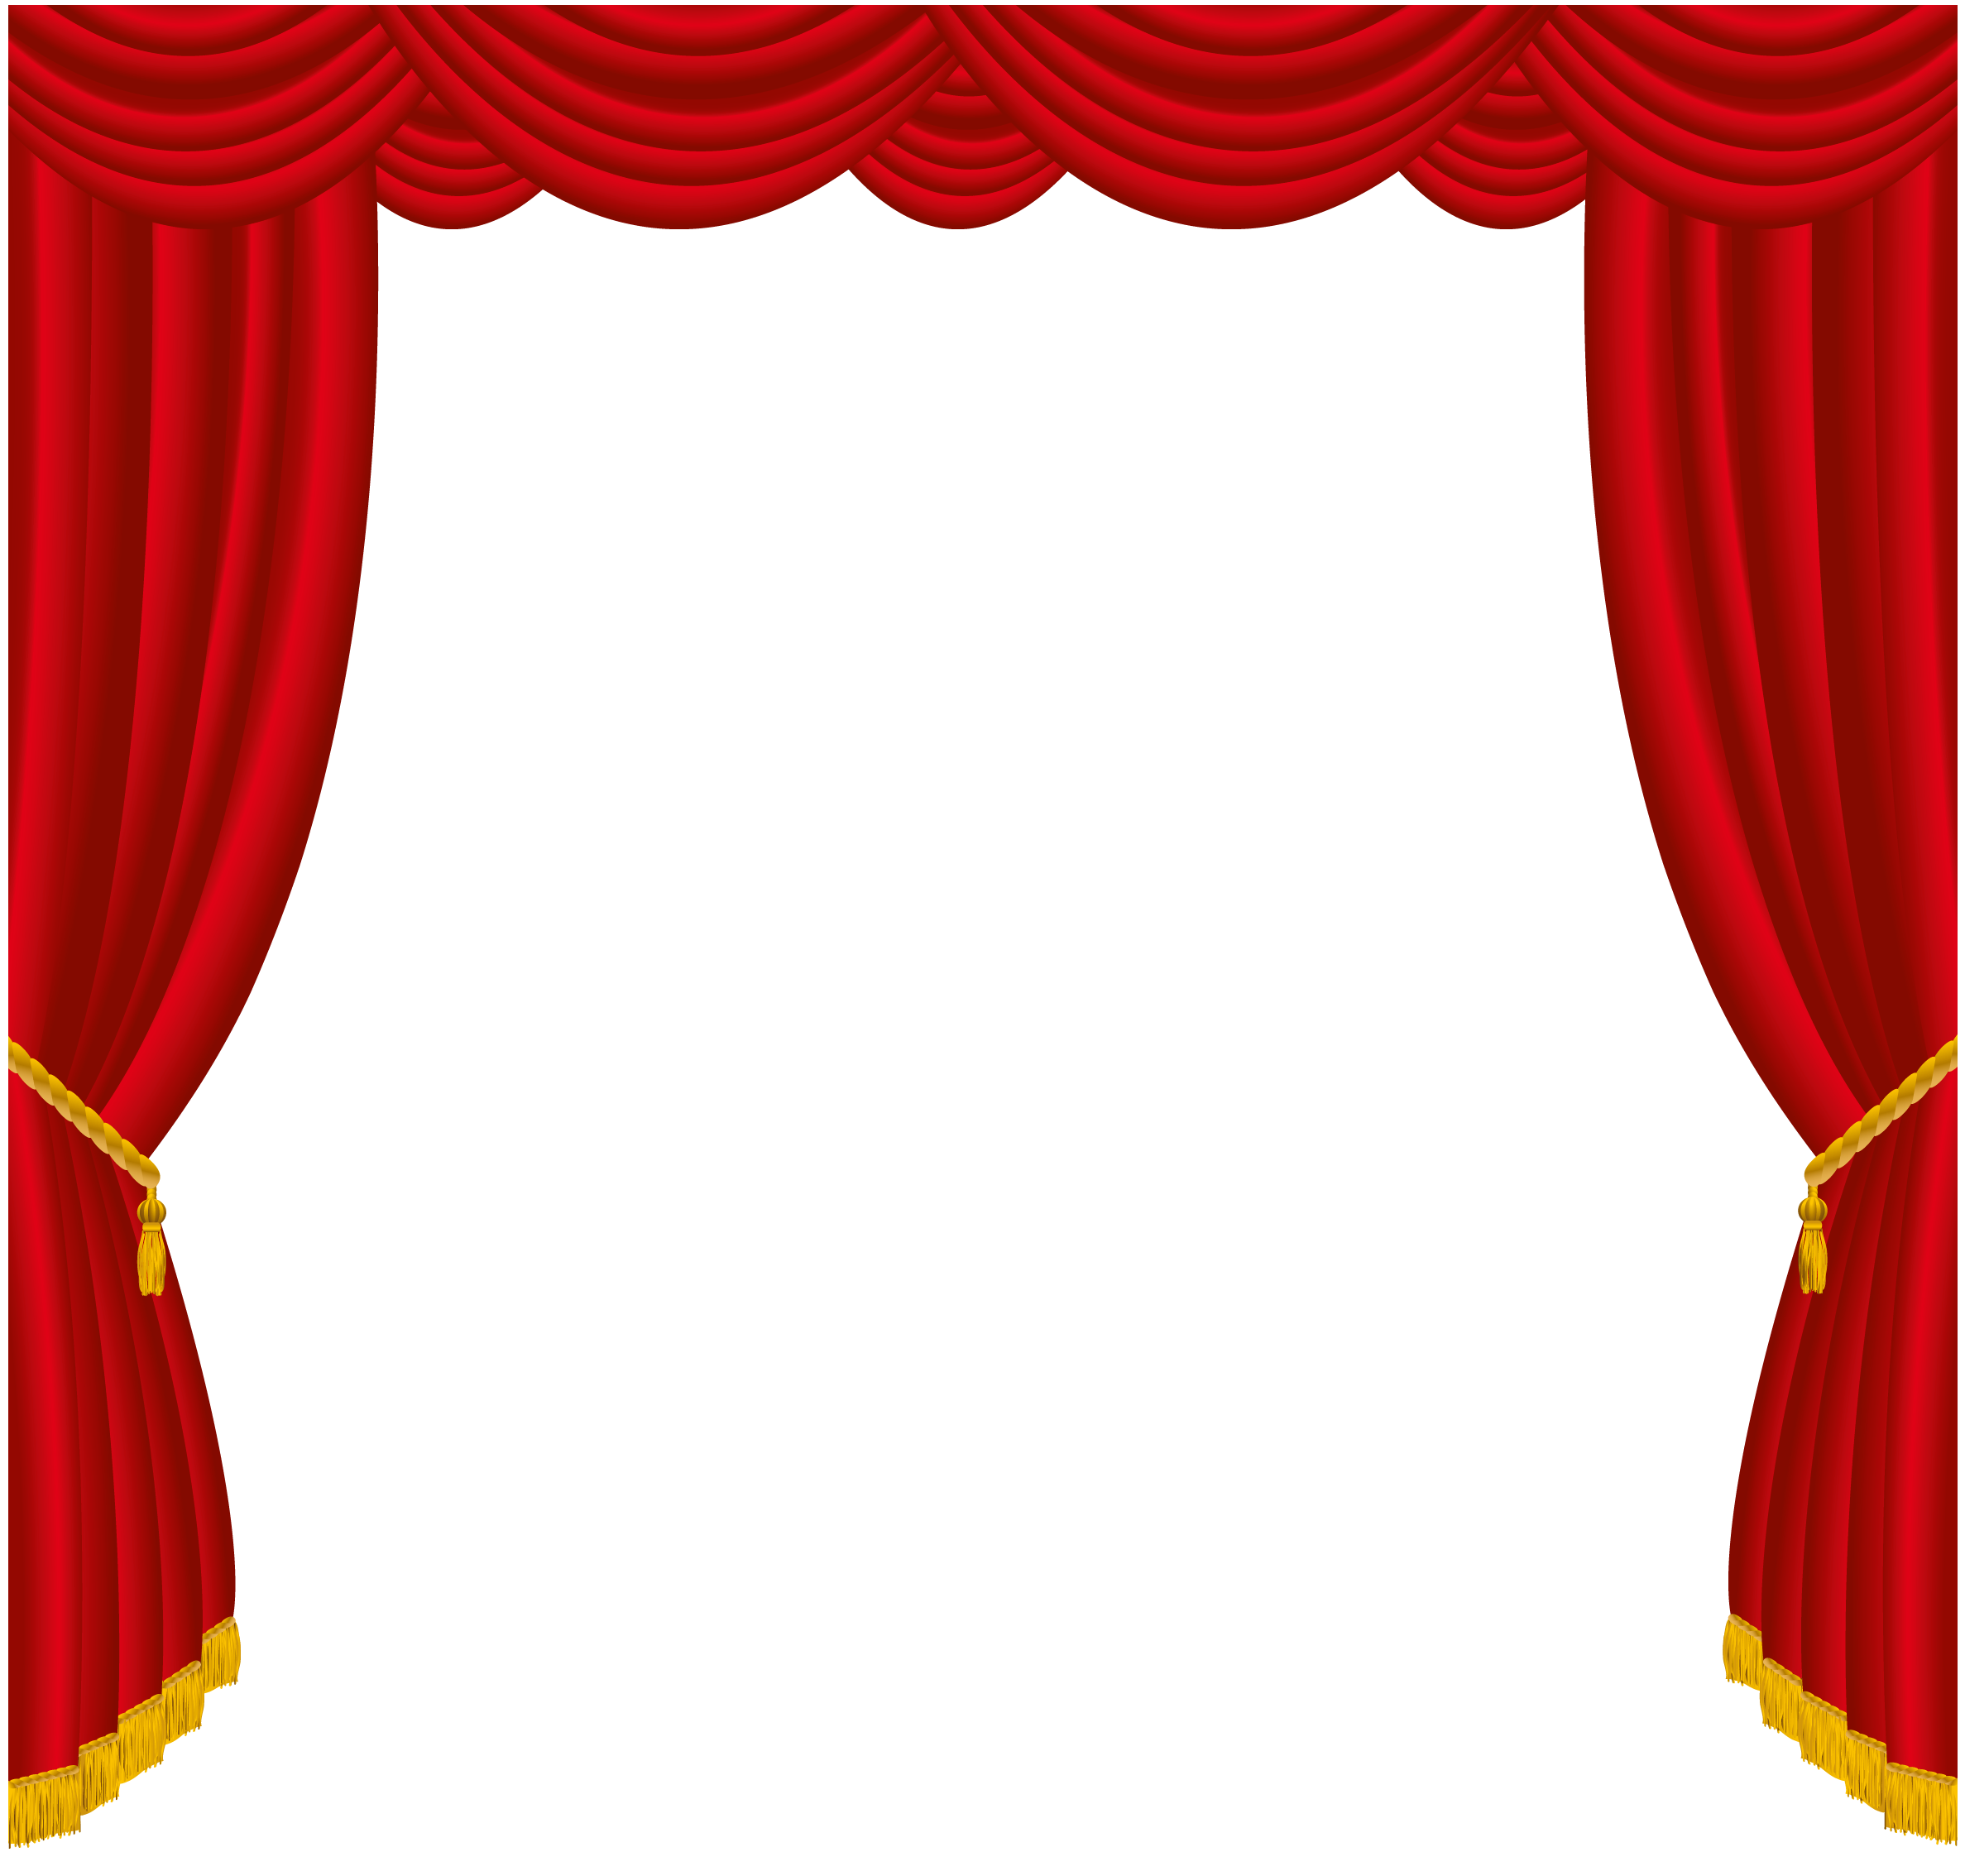 stage curtains red curtains paper curtain clipart gallery frame background background [ 2375 x 2267 Pixel ]